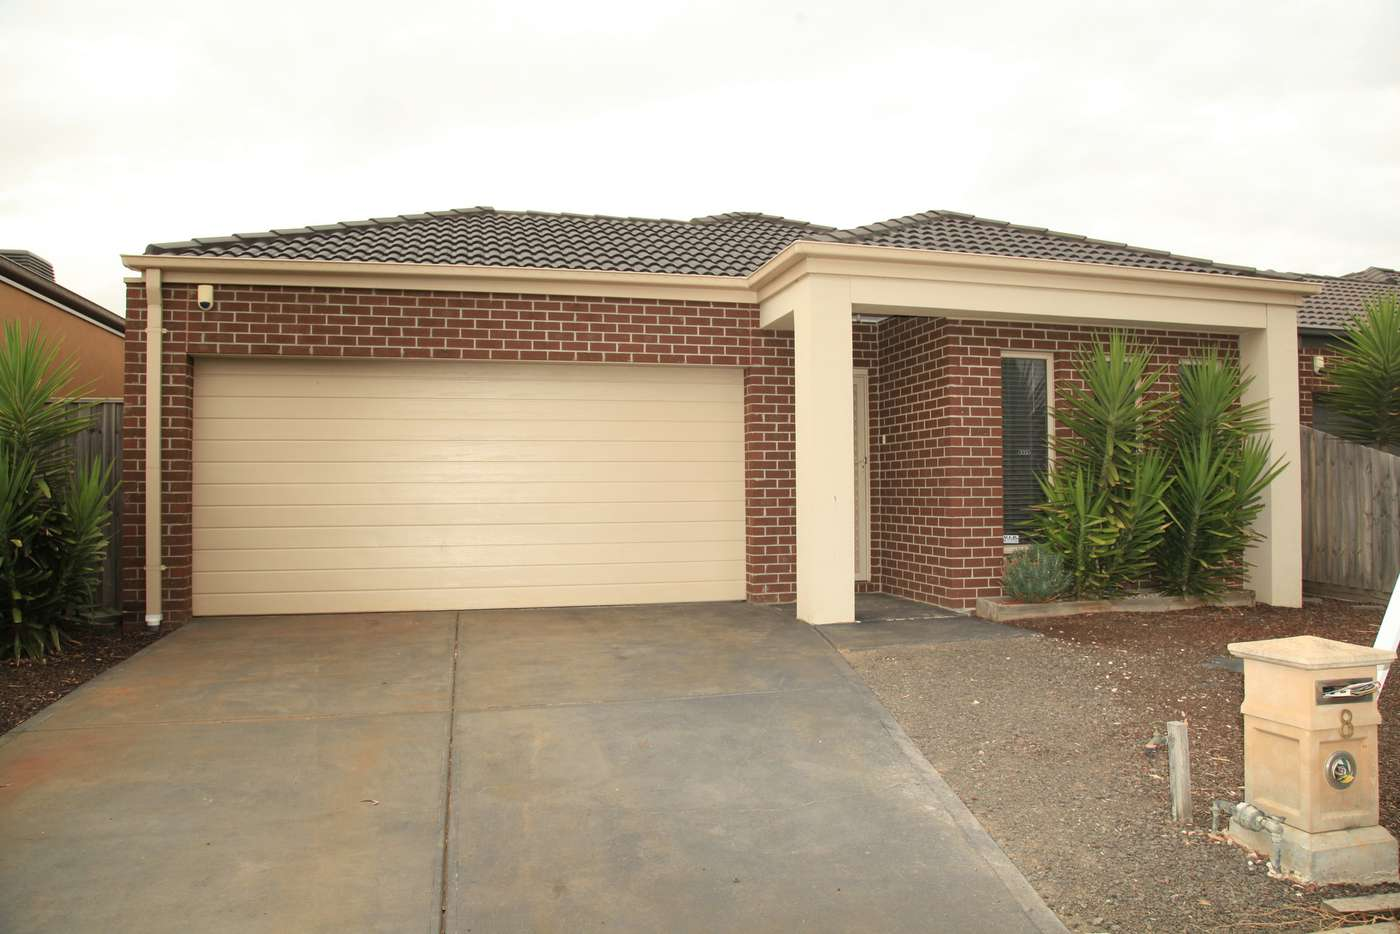 Main view of Homely house listing, 8 Methven Avenue, South Morang VIC 3752